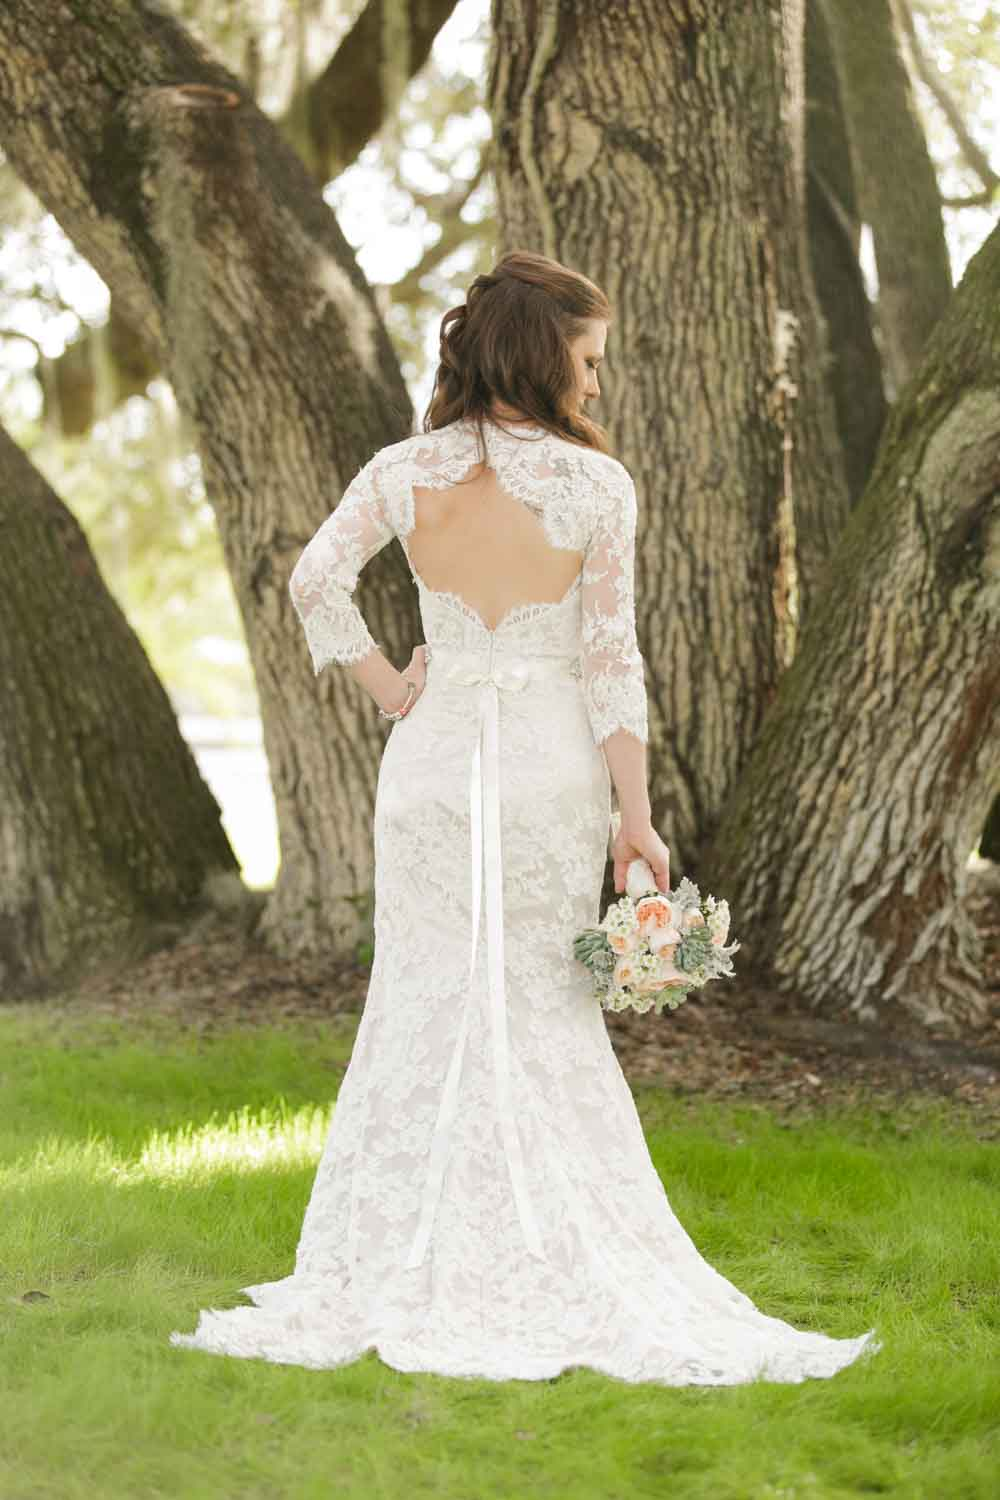 bride in lace gown holding bouquet and looking down